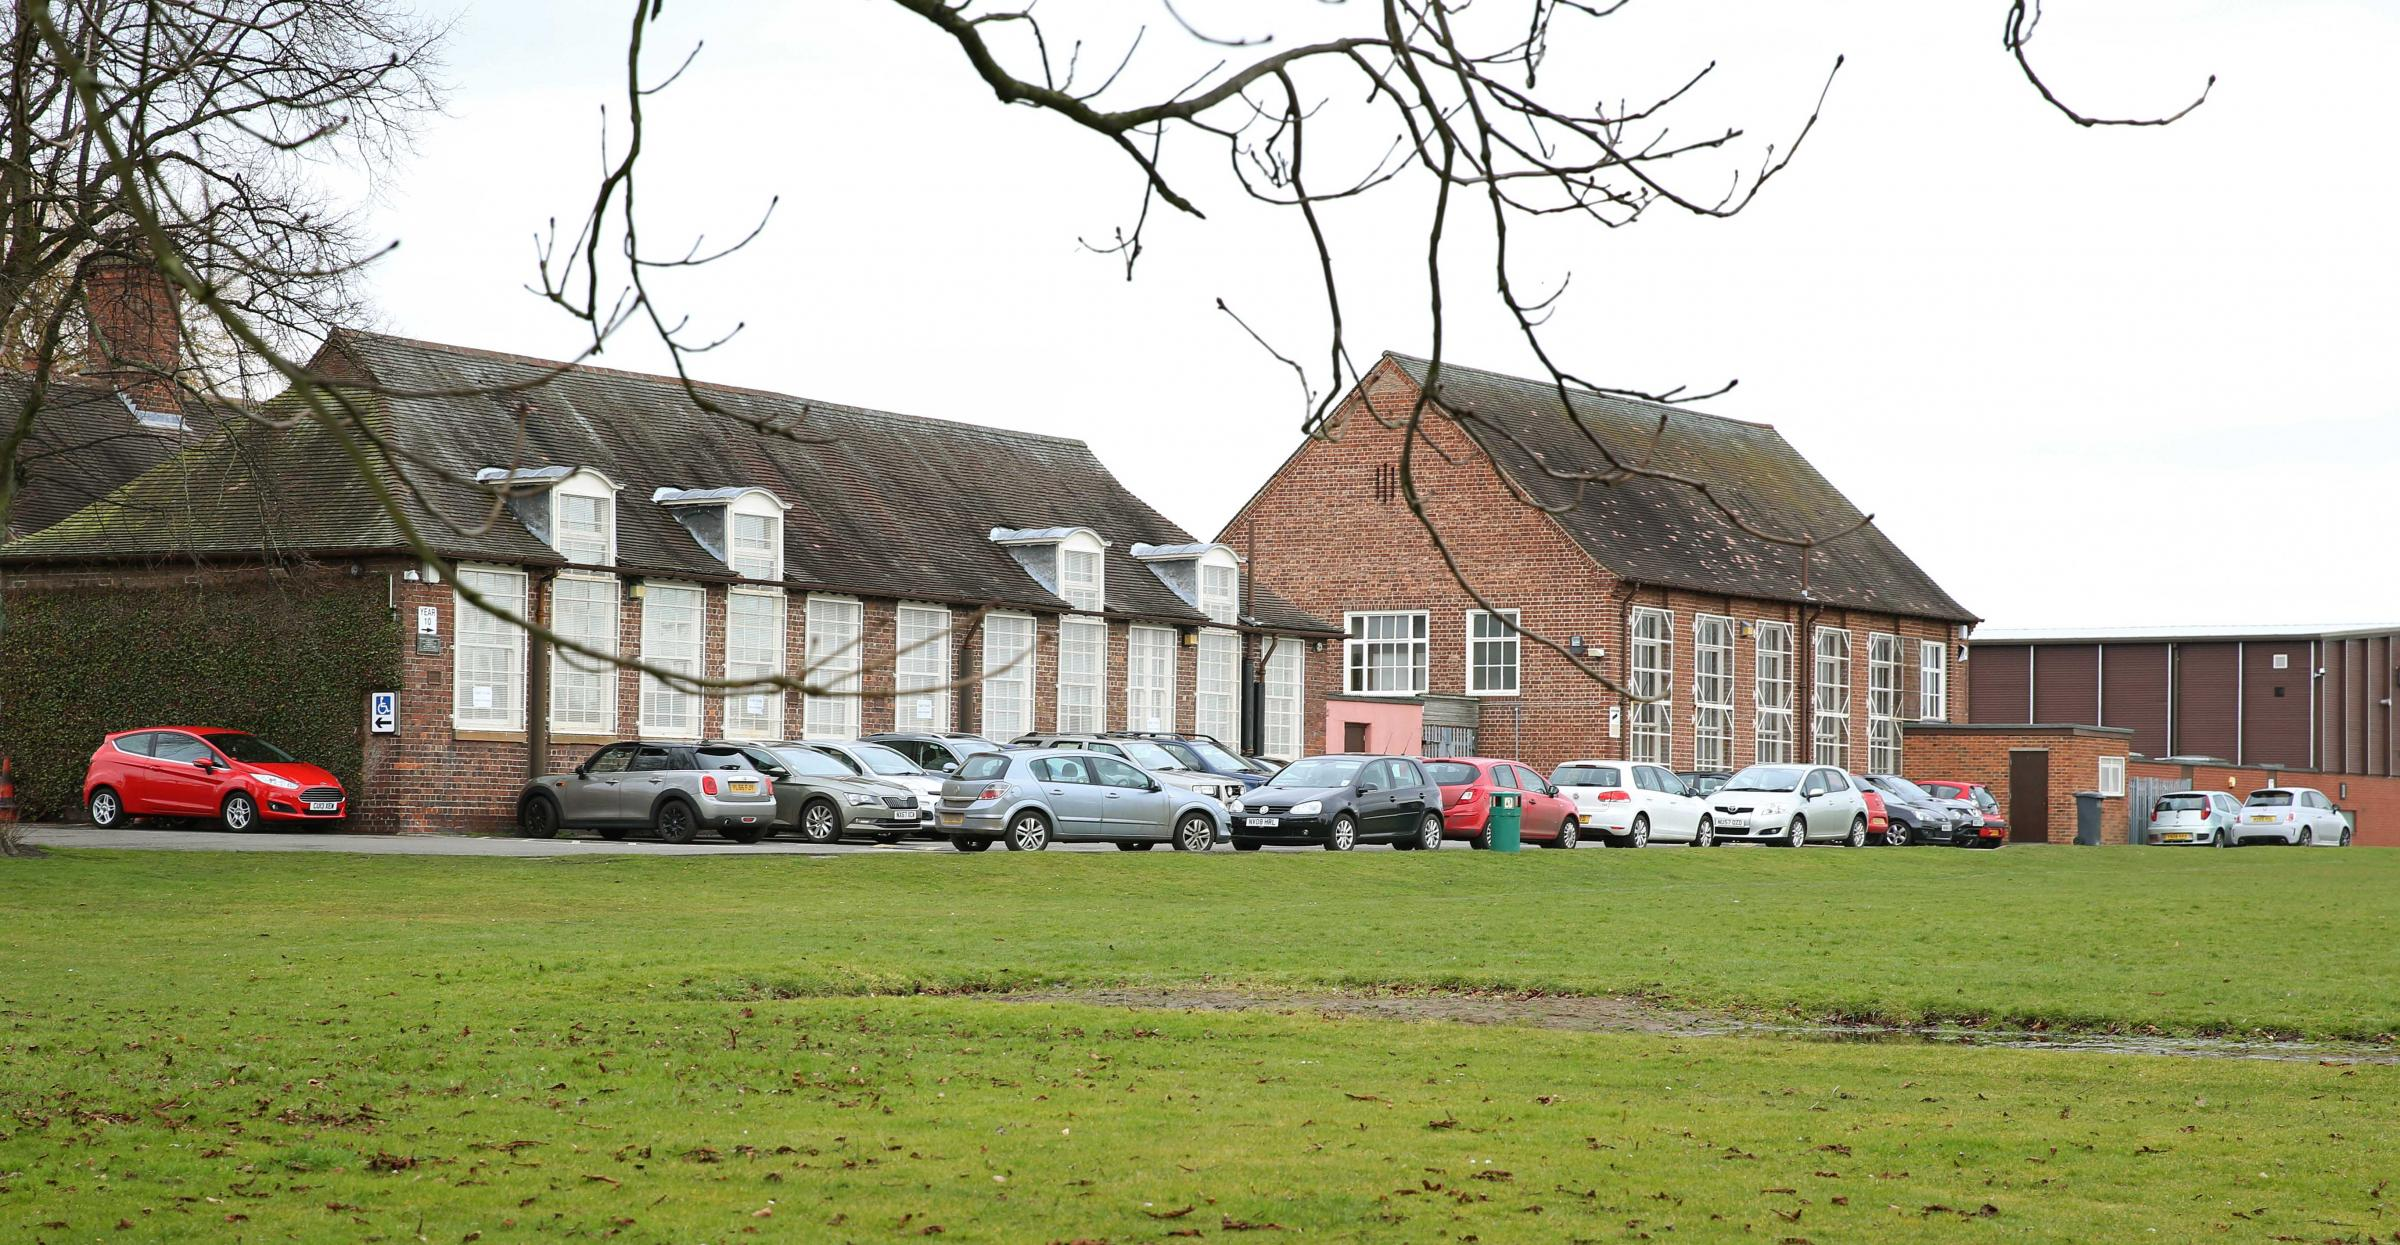 'INADEQUATE': Northallerton School and Sixth Form College. Picture: RICHARD DOUGHTY PHOTOGRAPHY